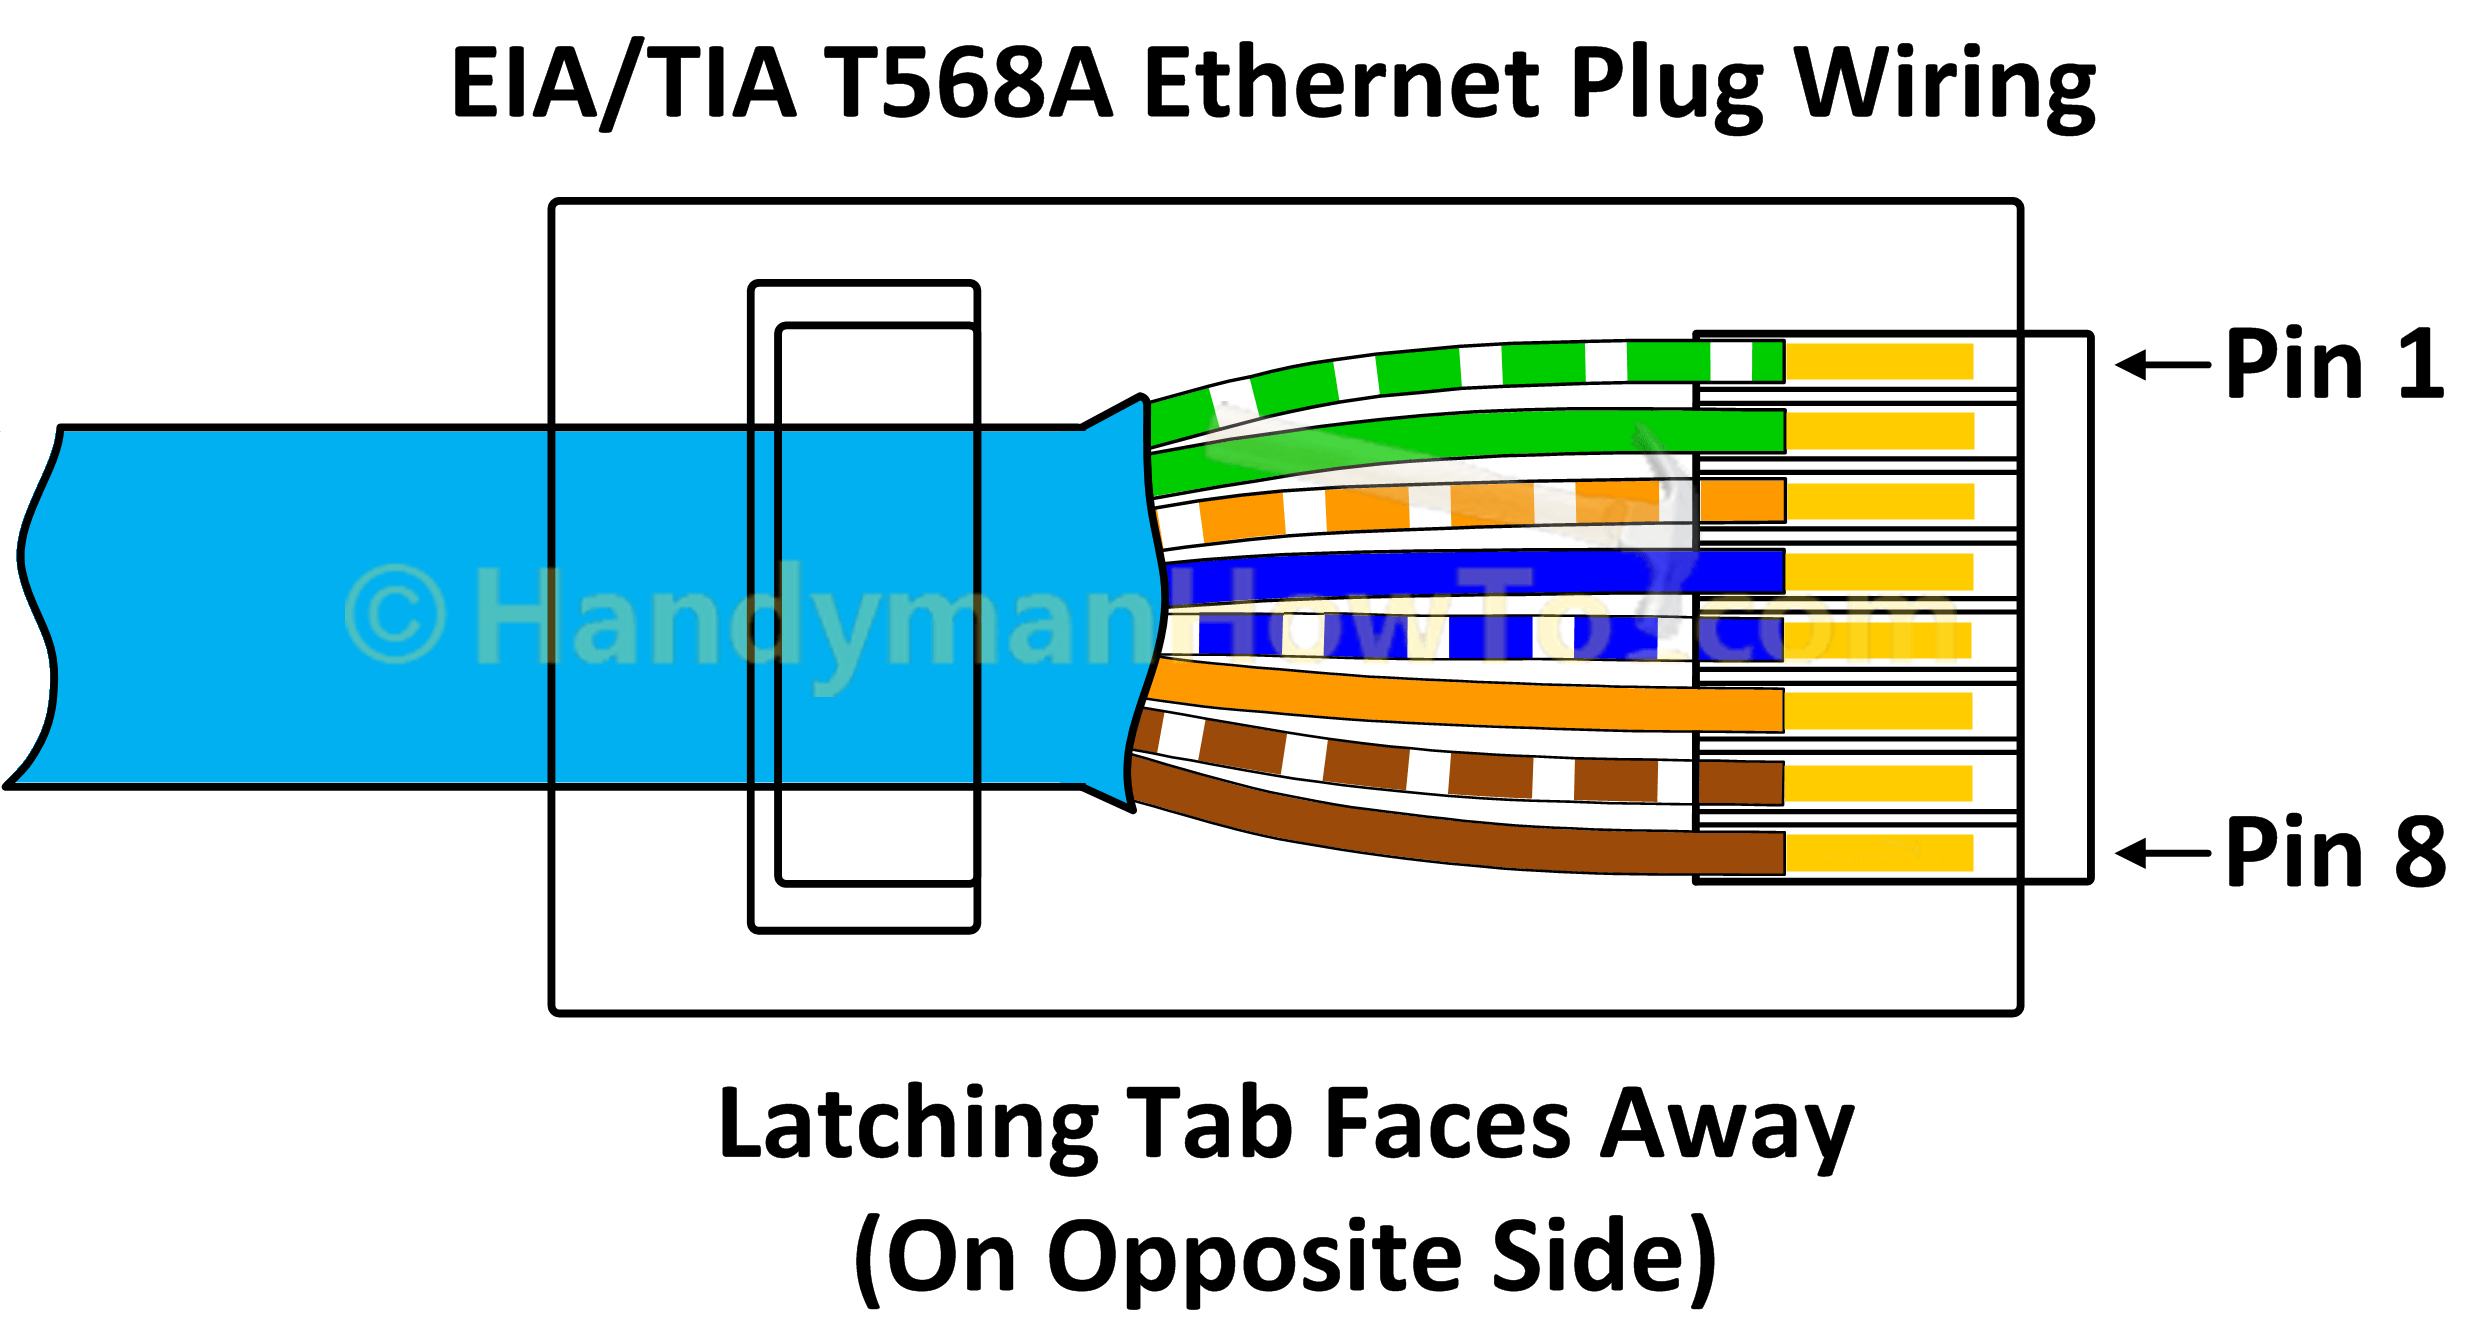 Rj45 Ethernet Cable And Plug Wiring - Today Wiring Diagram - Rj45 Wiring Diagram